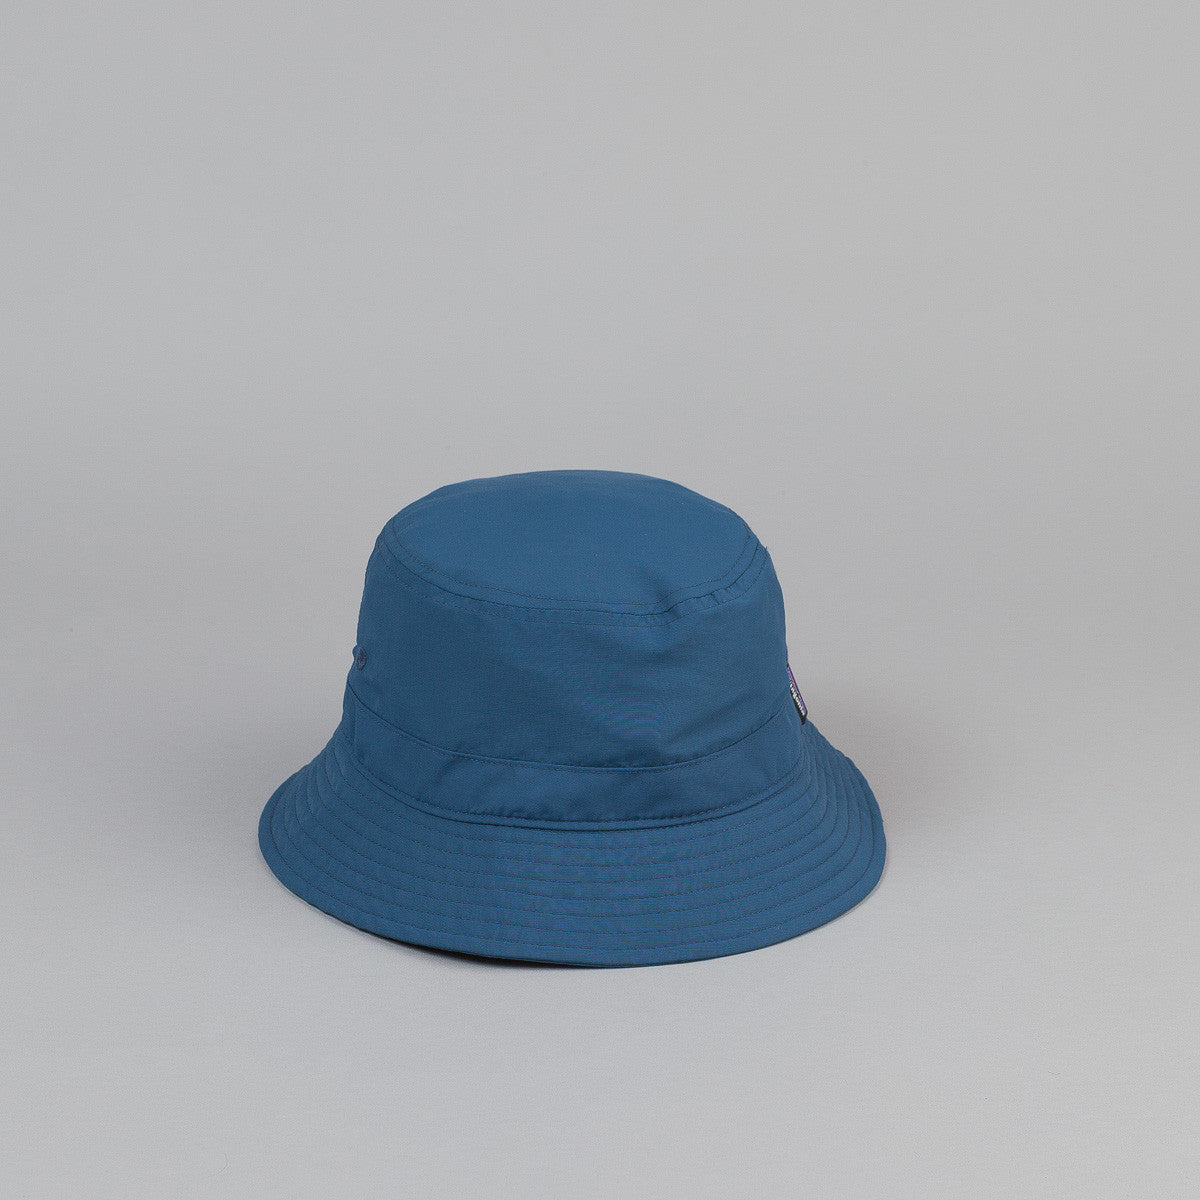 Patagonia Wavefarer Bucket Hat - Glass Blue w/ Catalyst Blue